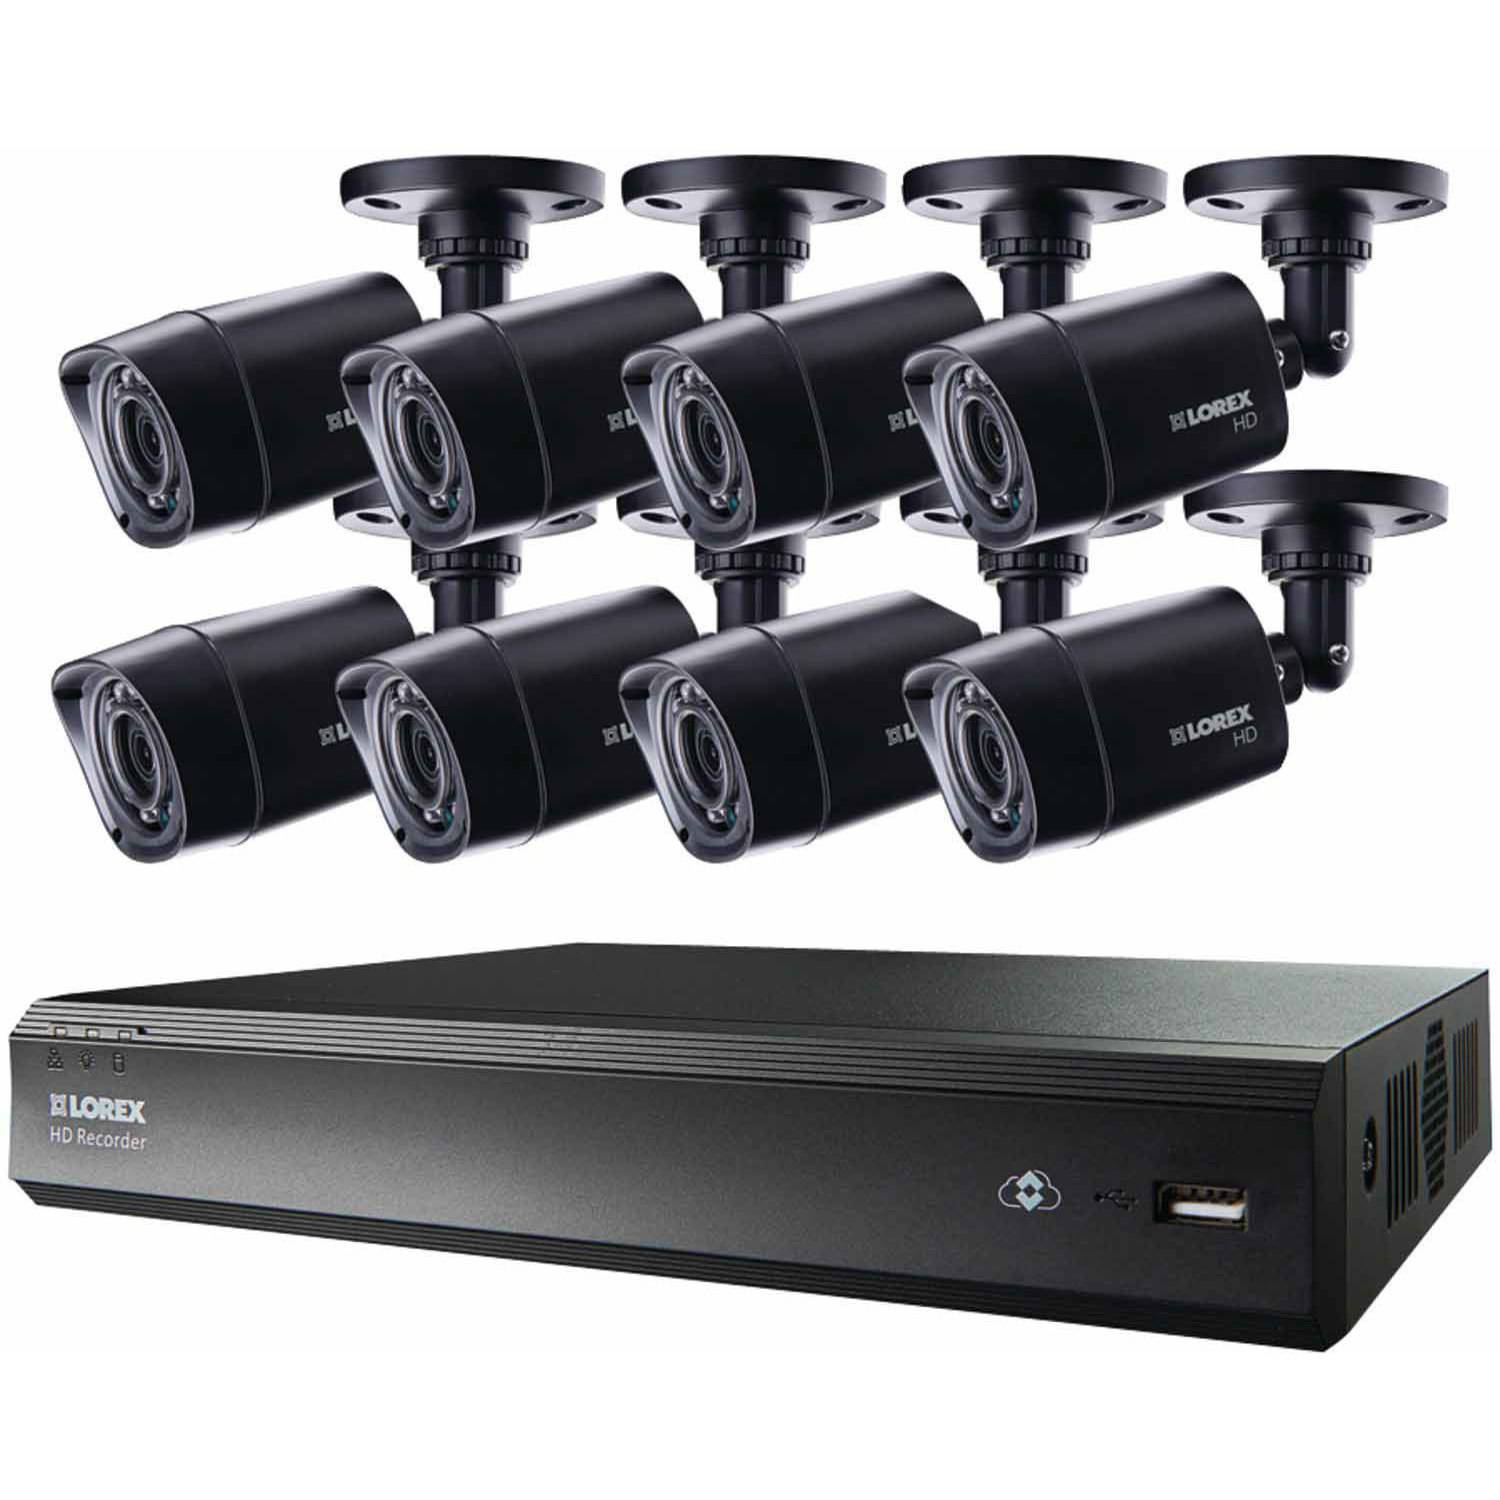 Lorex Lhv00161tc8 16-Channel MPX HD-DVR with 1TB and Eight 720p Security Cameras